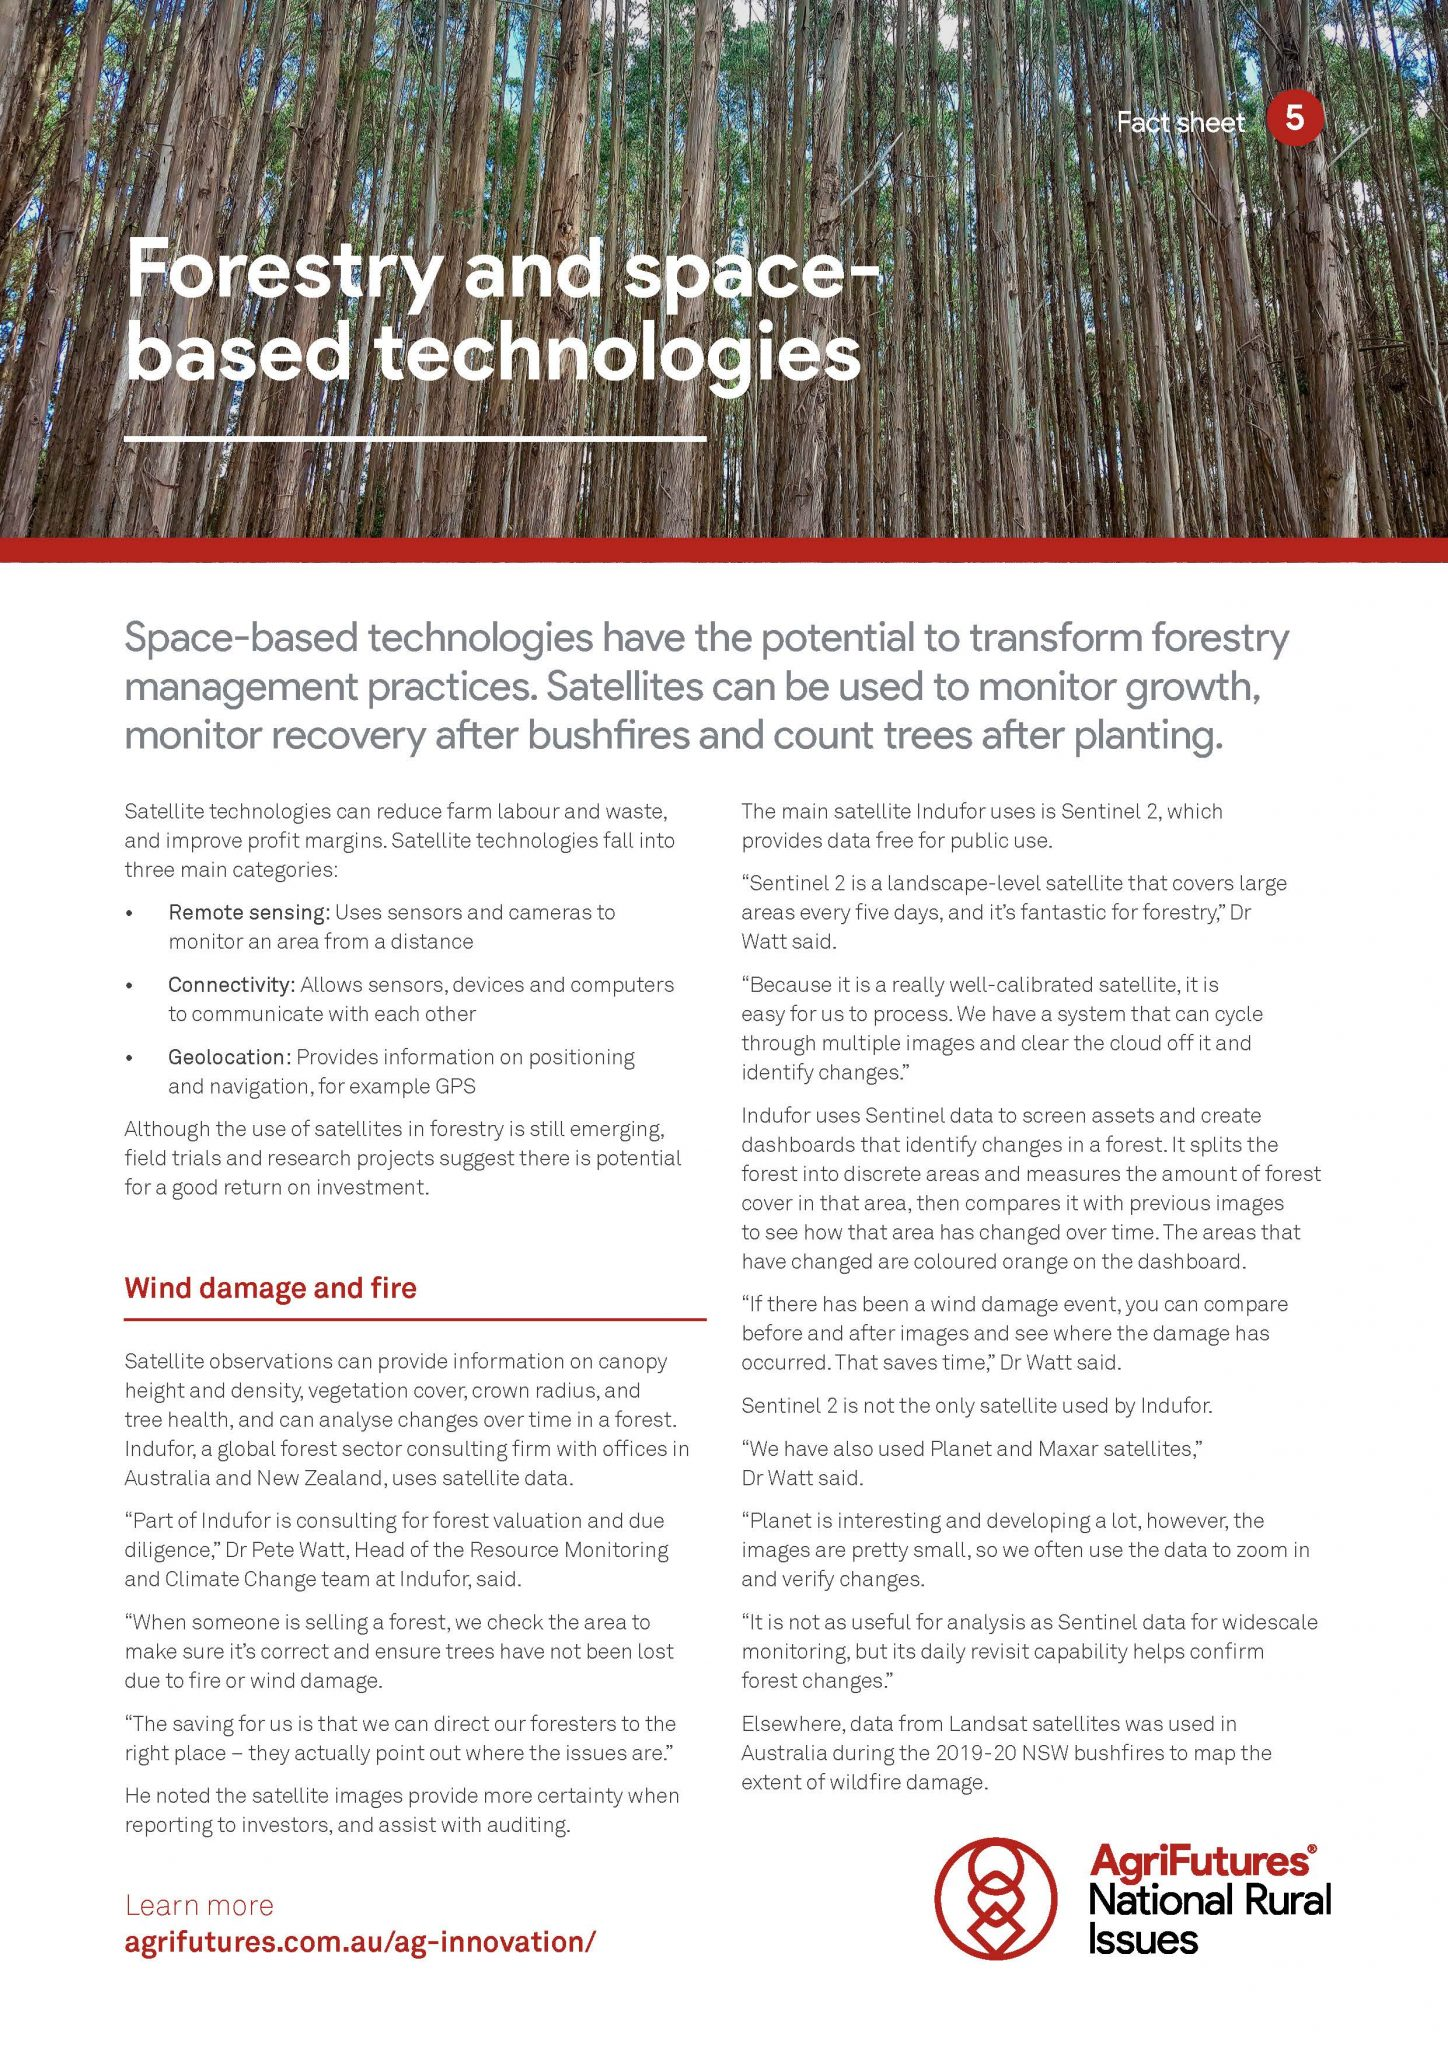 Fact sheet: Forestry and space-based technologies - image